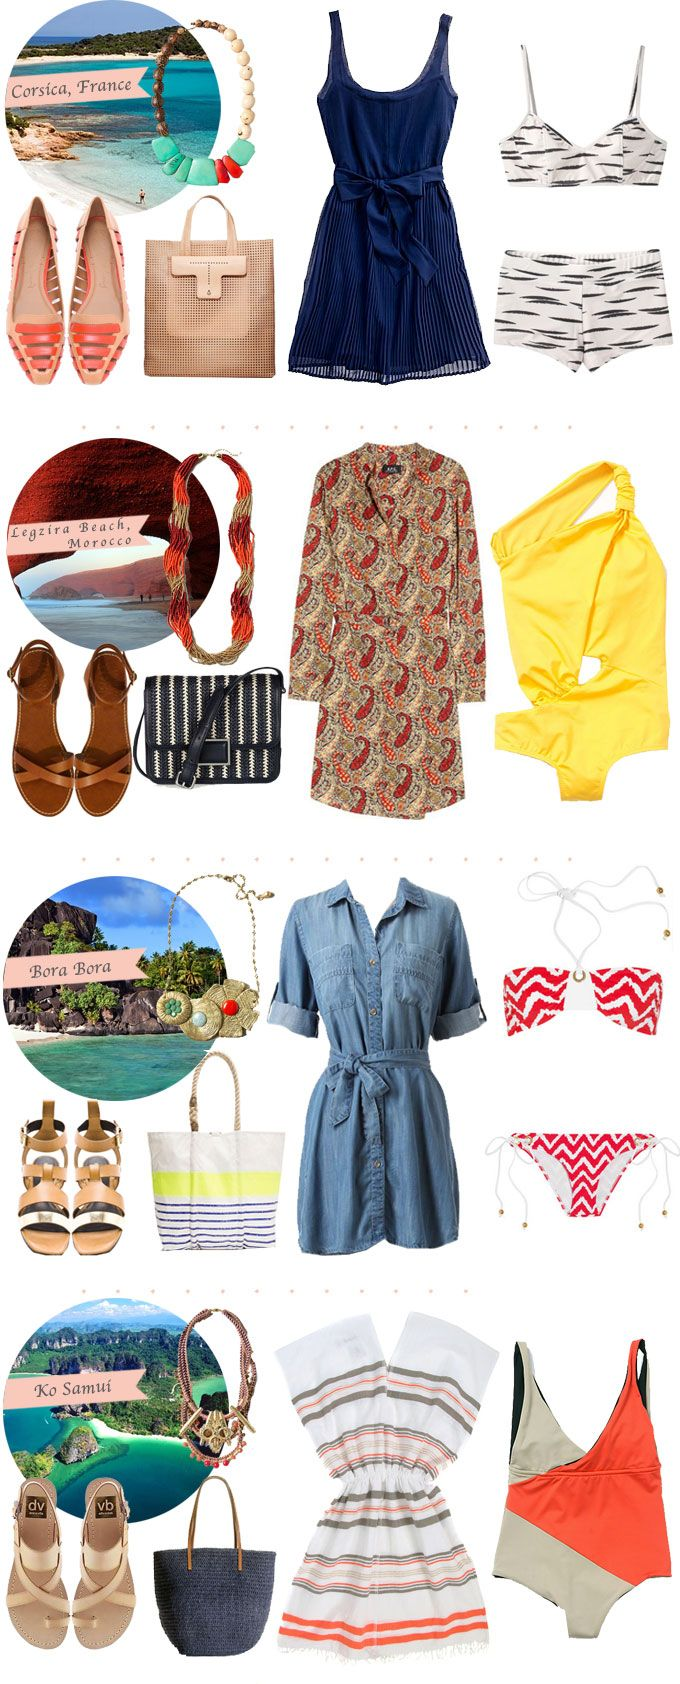 17 Best ideas about Cruise Clothes on Pinterest | Outfits with ...